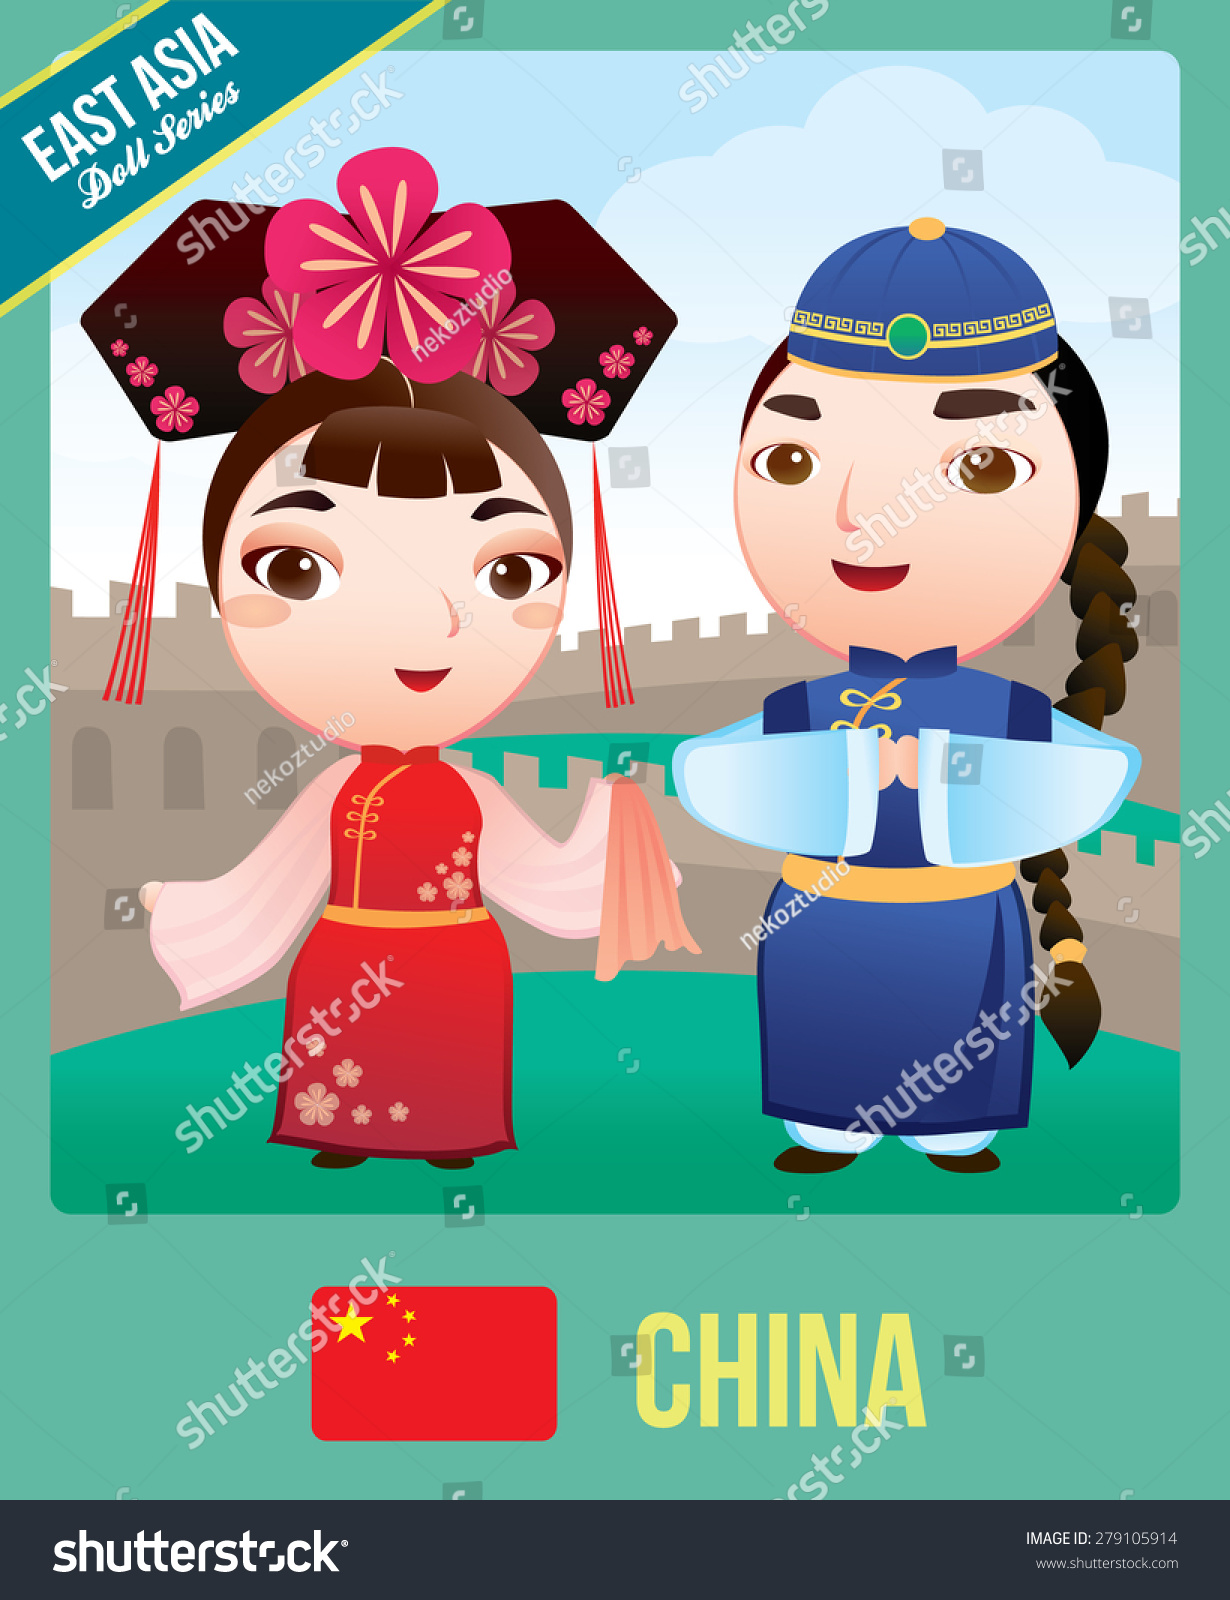 Cute couple doll chinese symbol china stock vector 279105914 the cute couple doll of chinese as a symbol of china country member of east asia biocorpaavc